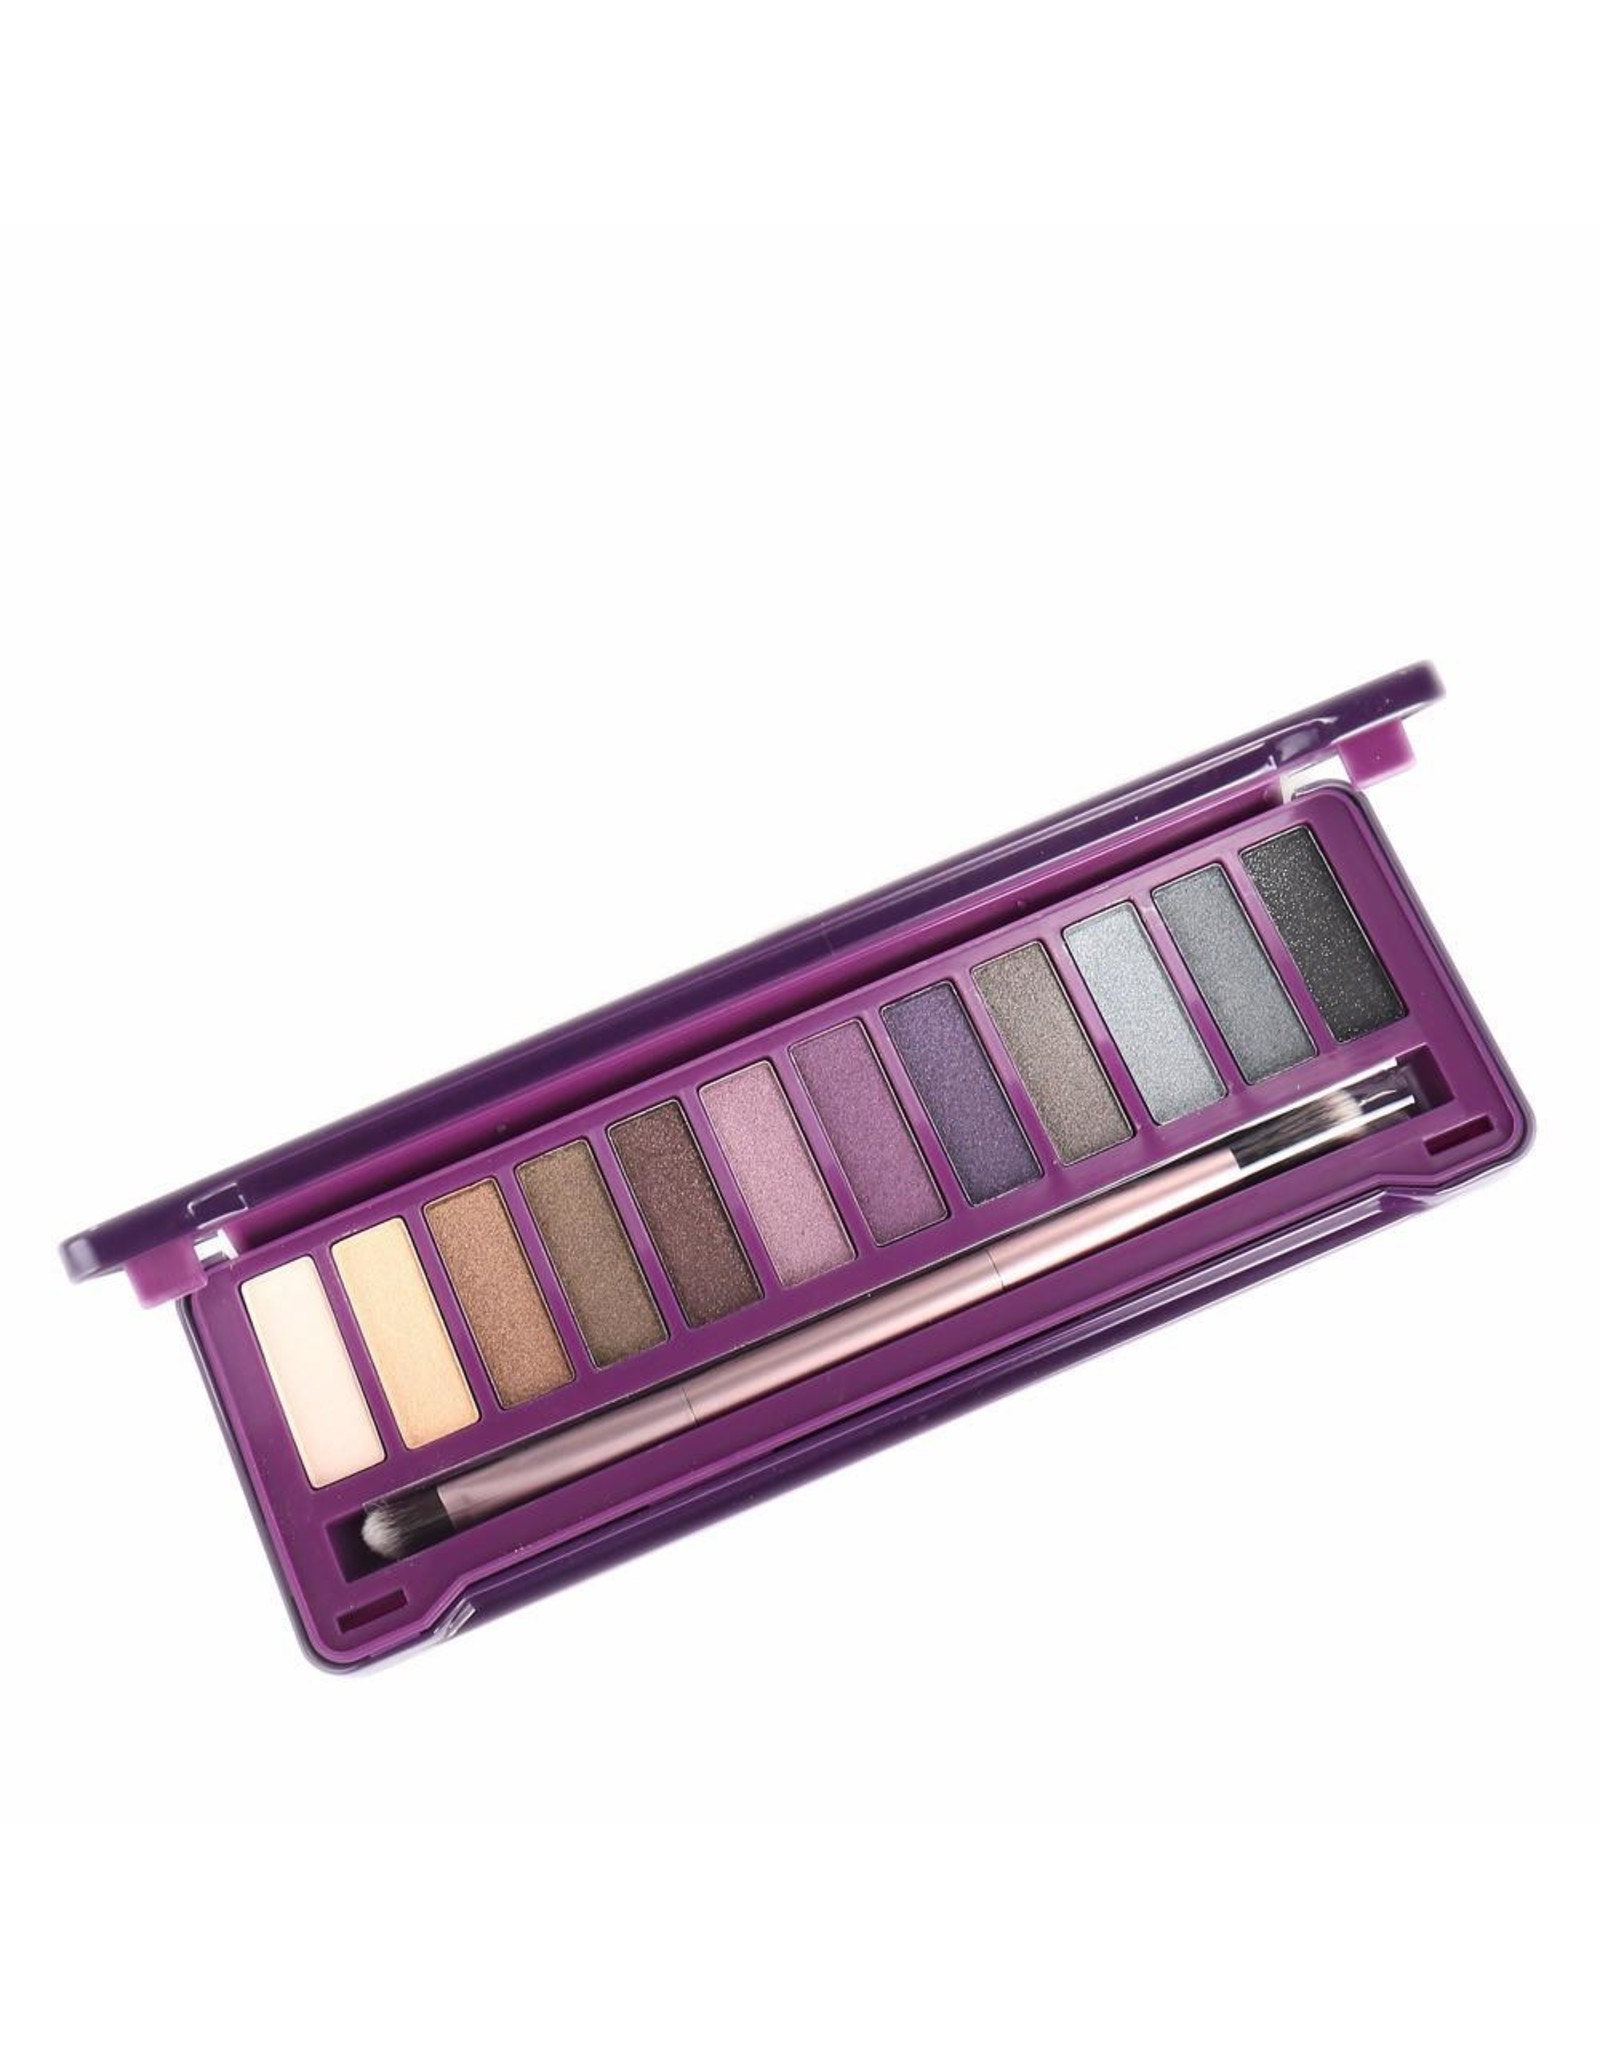 Beauty Creations Intense Shadow Palettes by Beauty Creations